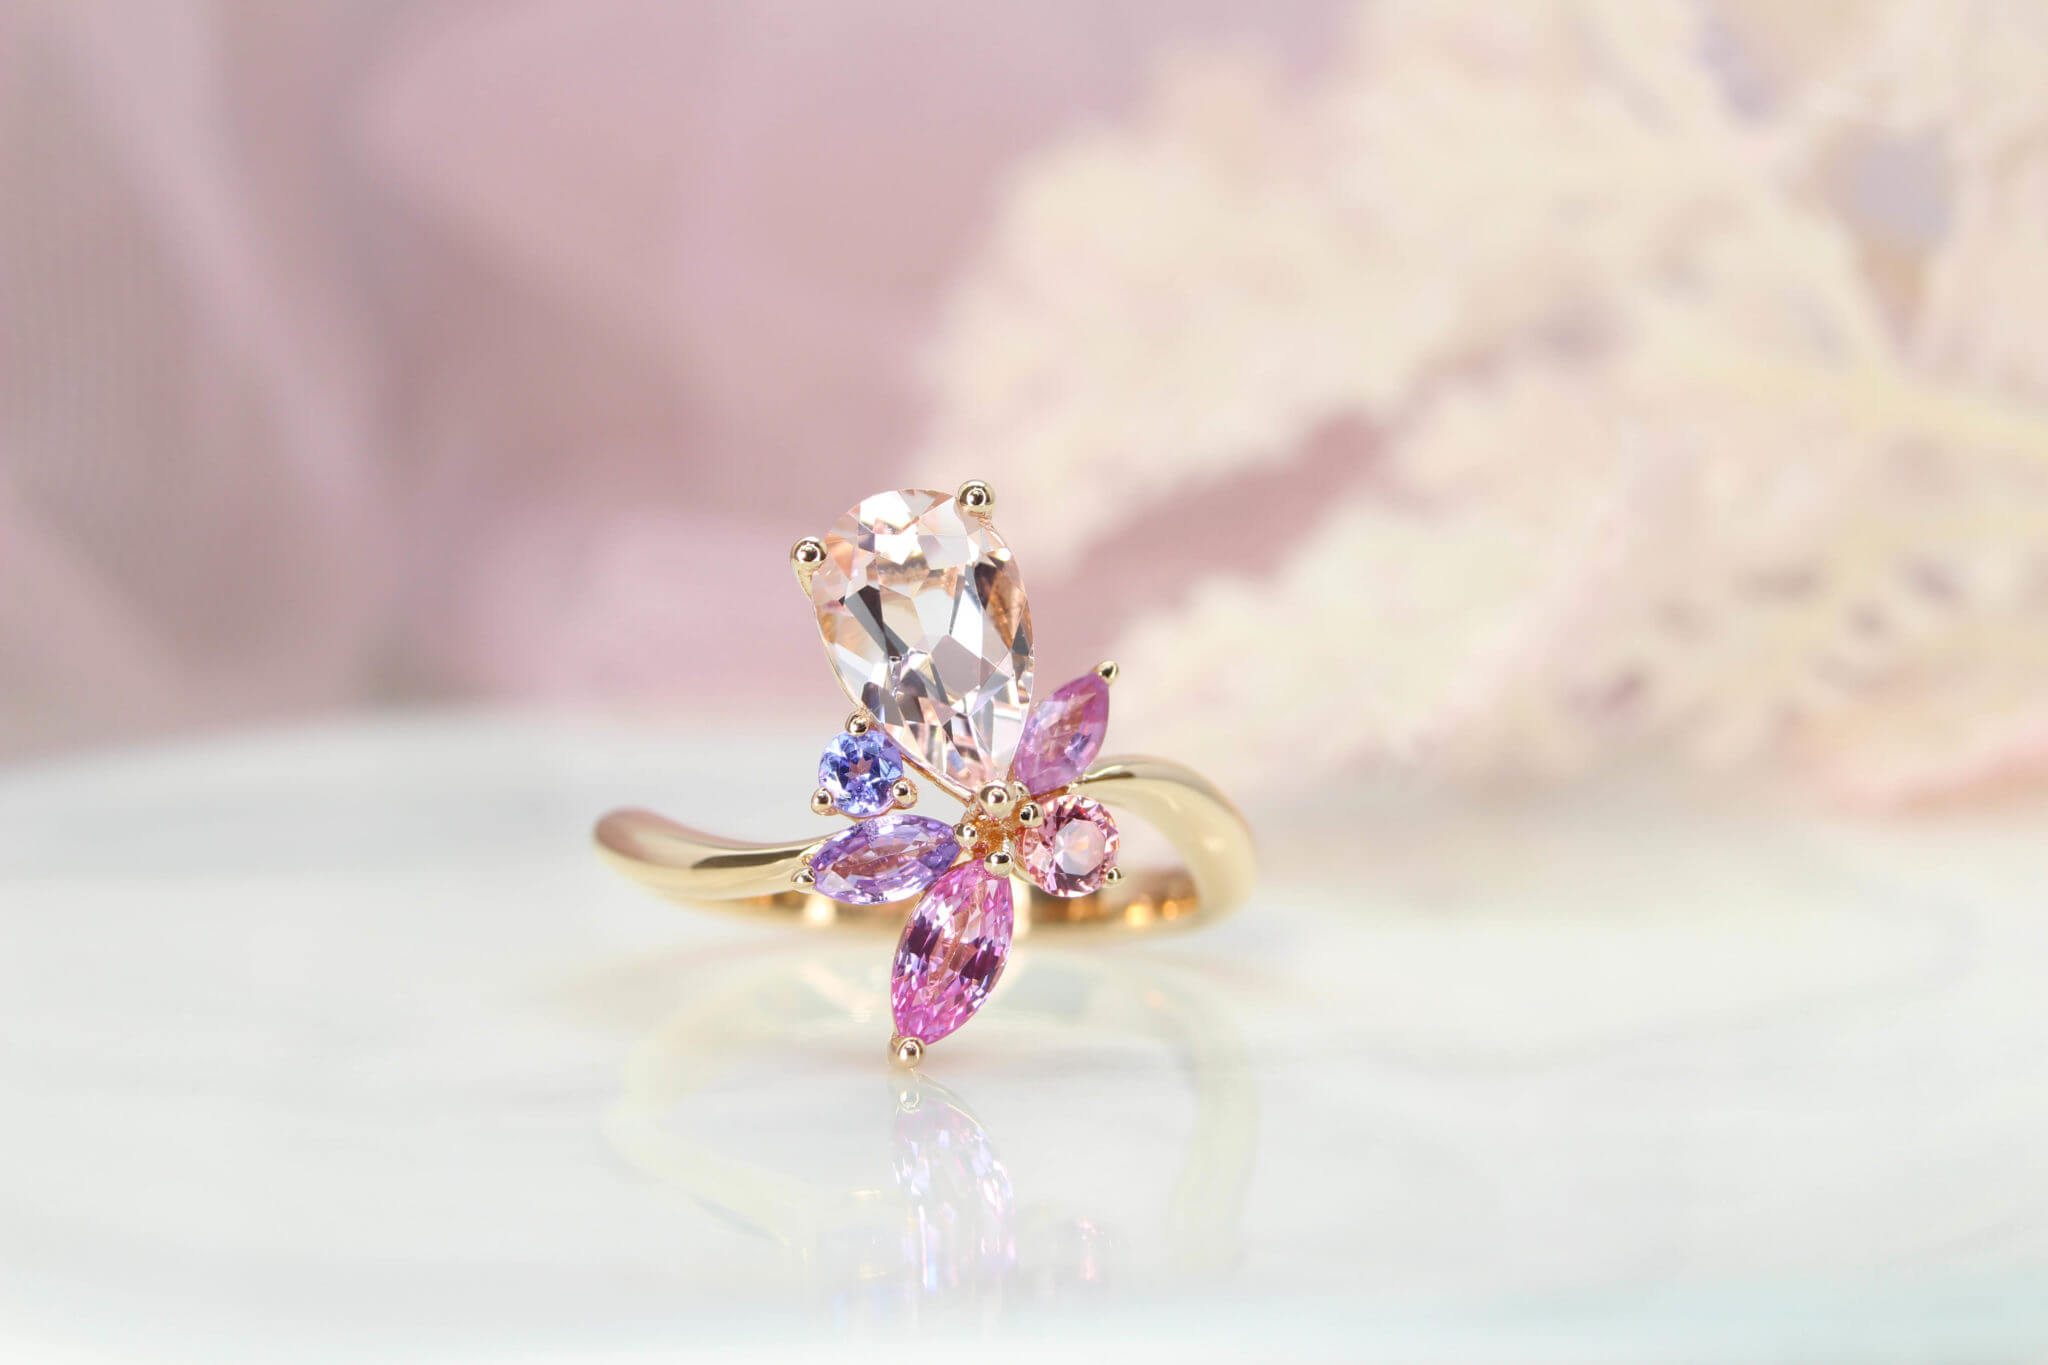 Floral Engagement Ring, customised with Morganite pear with orange and pink coloured shade, violet and pink sapphire in marquise shapes. Designed and crafted to a unique floral engagement ring | Local Singapore Jeweller customised engagement ring in floral design.